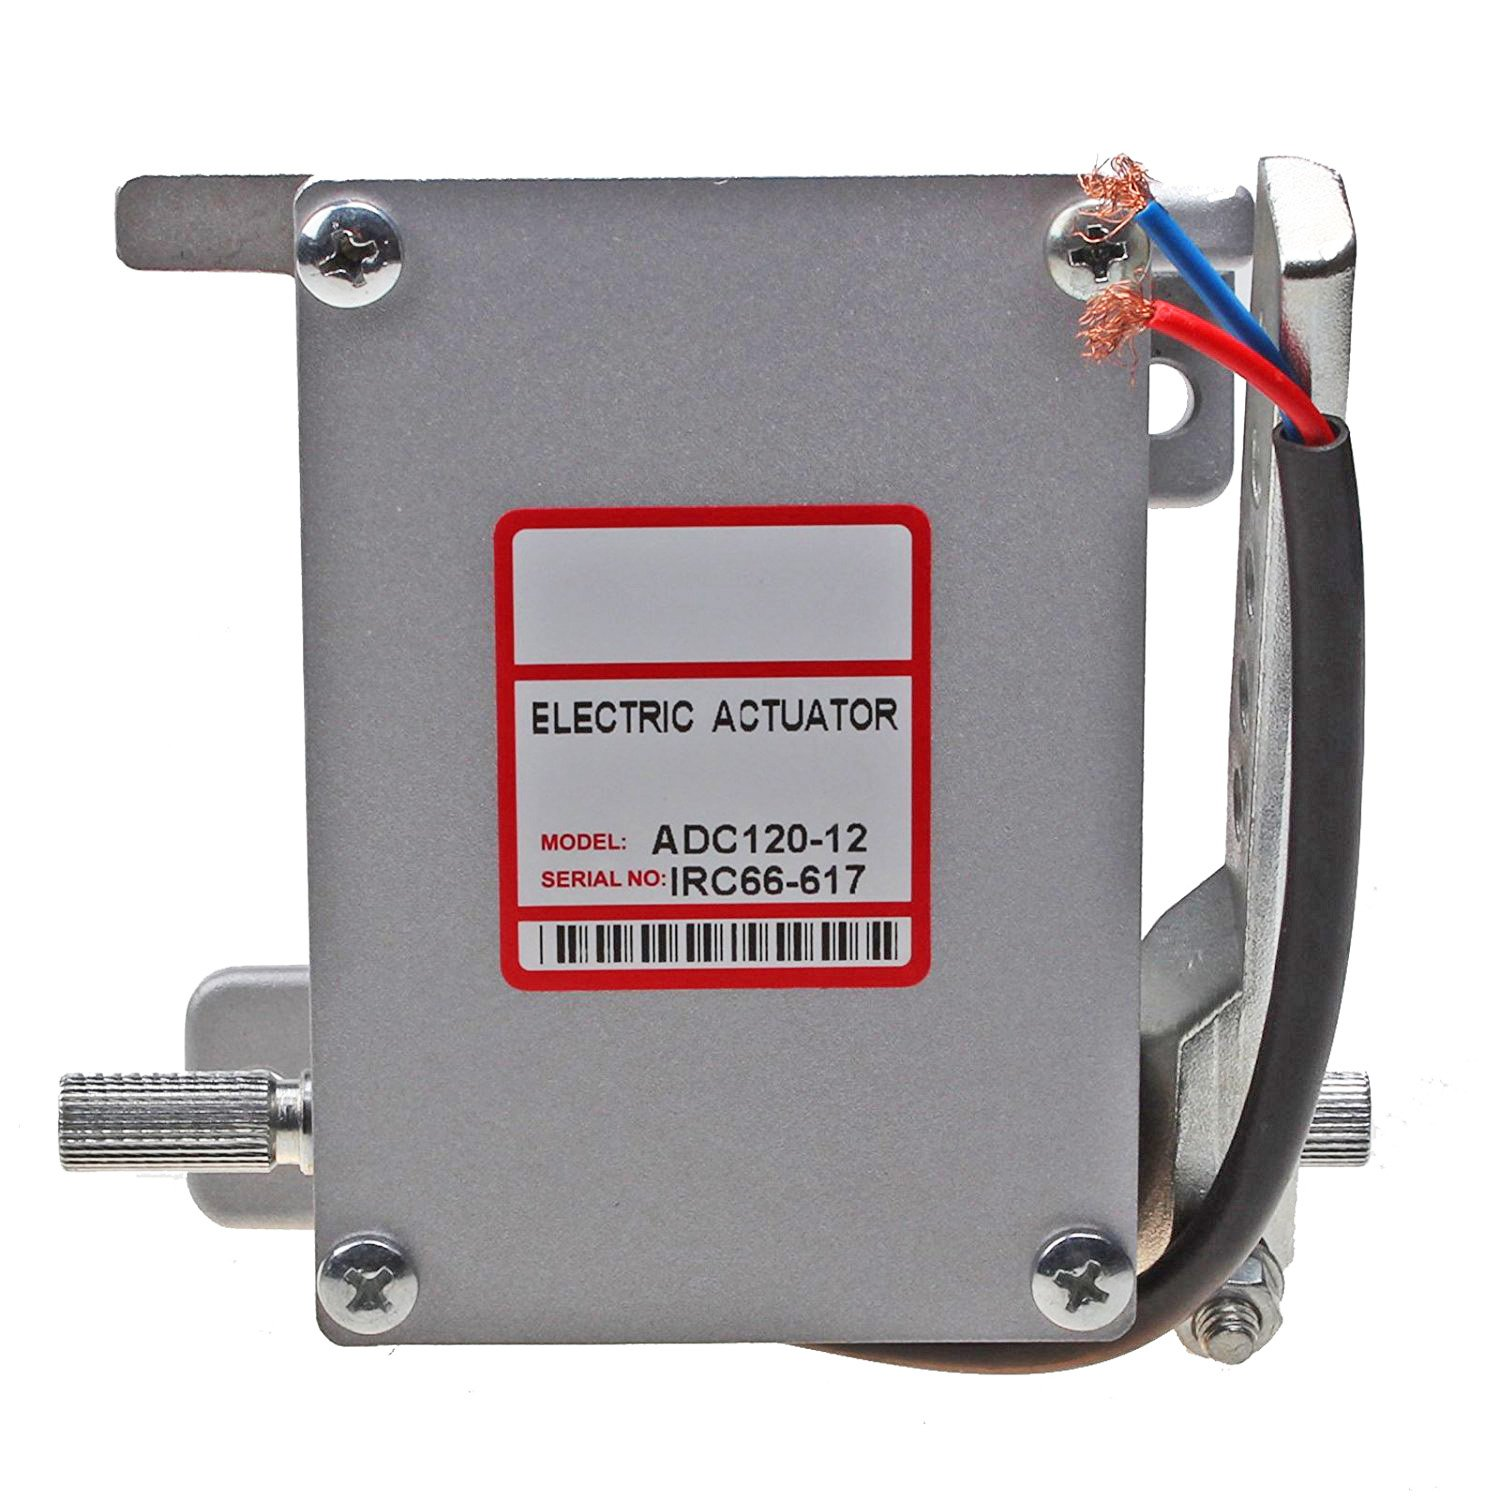 Mover Parts External Electronic Actuator ADB ADC120-12V Generator Automatic Controller